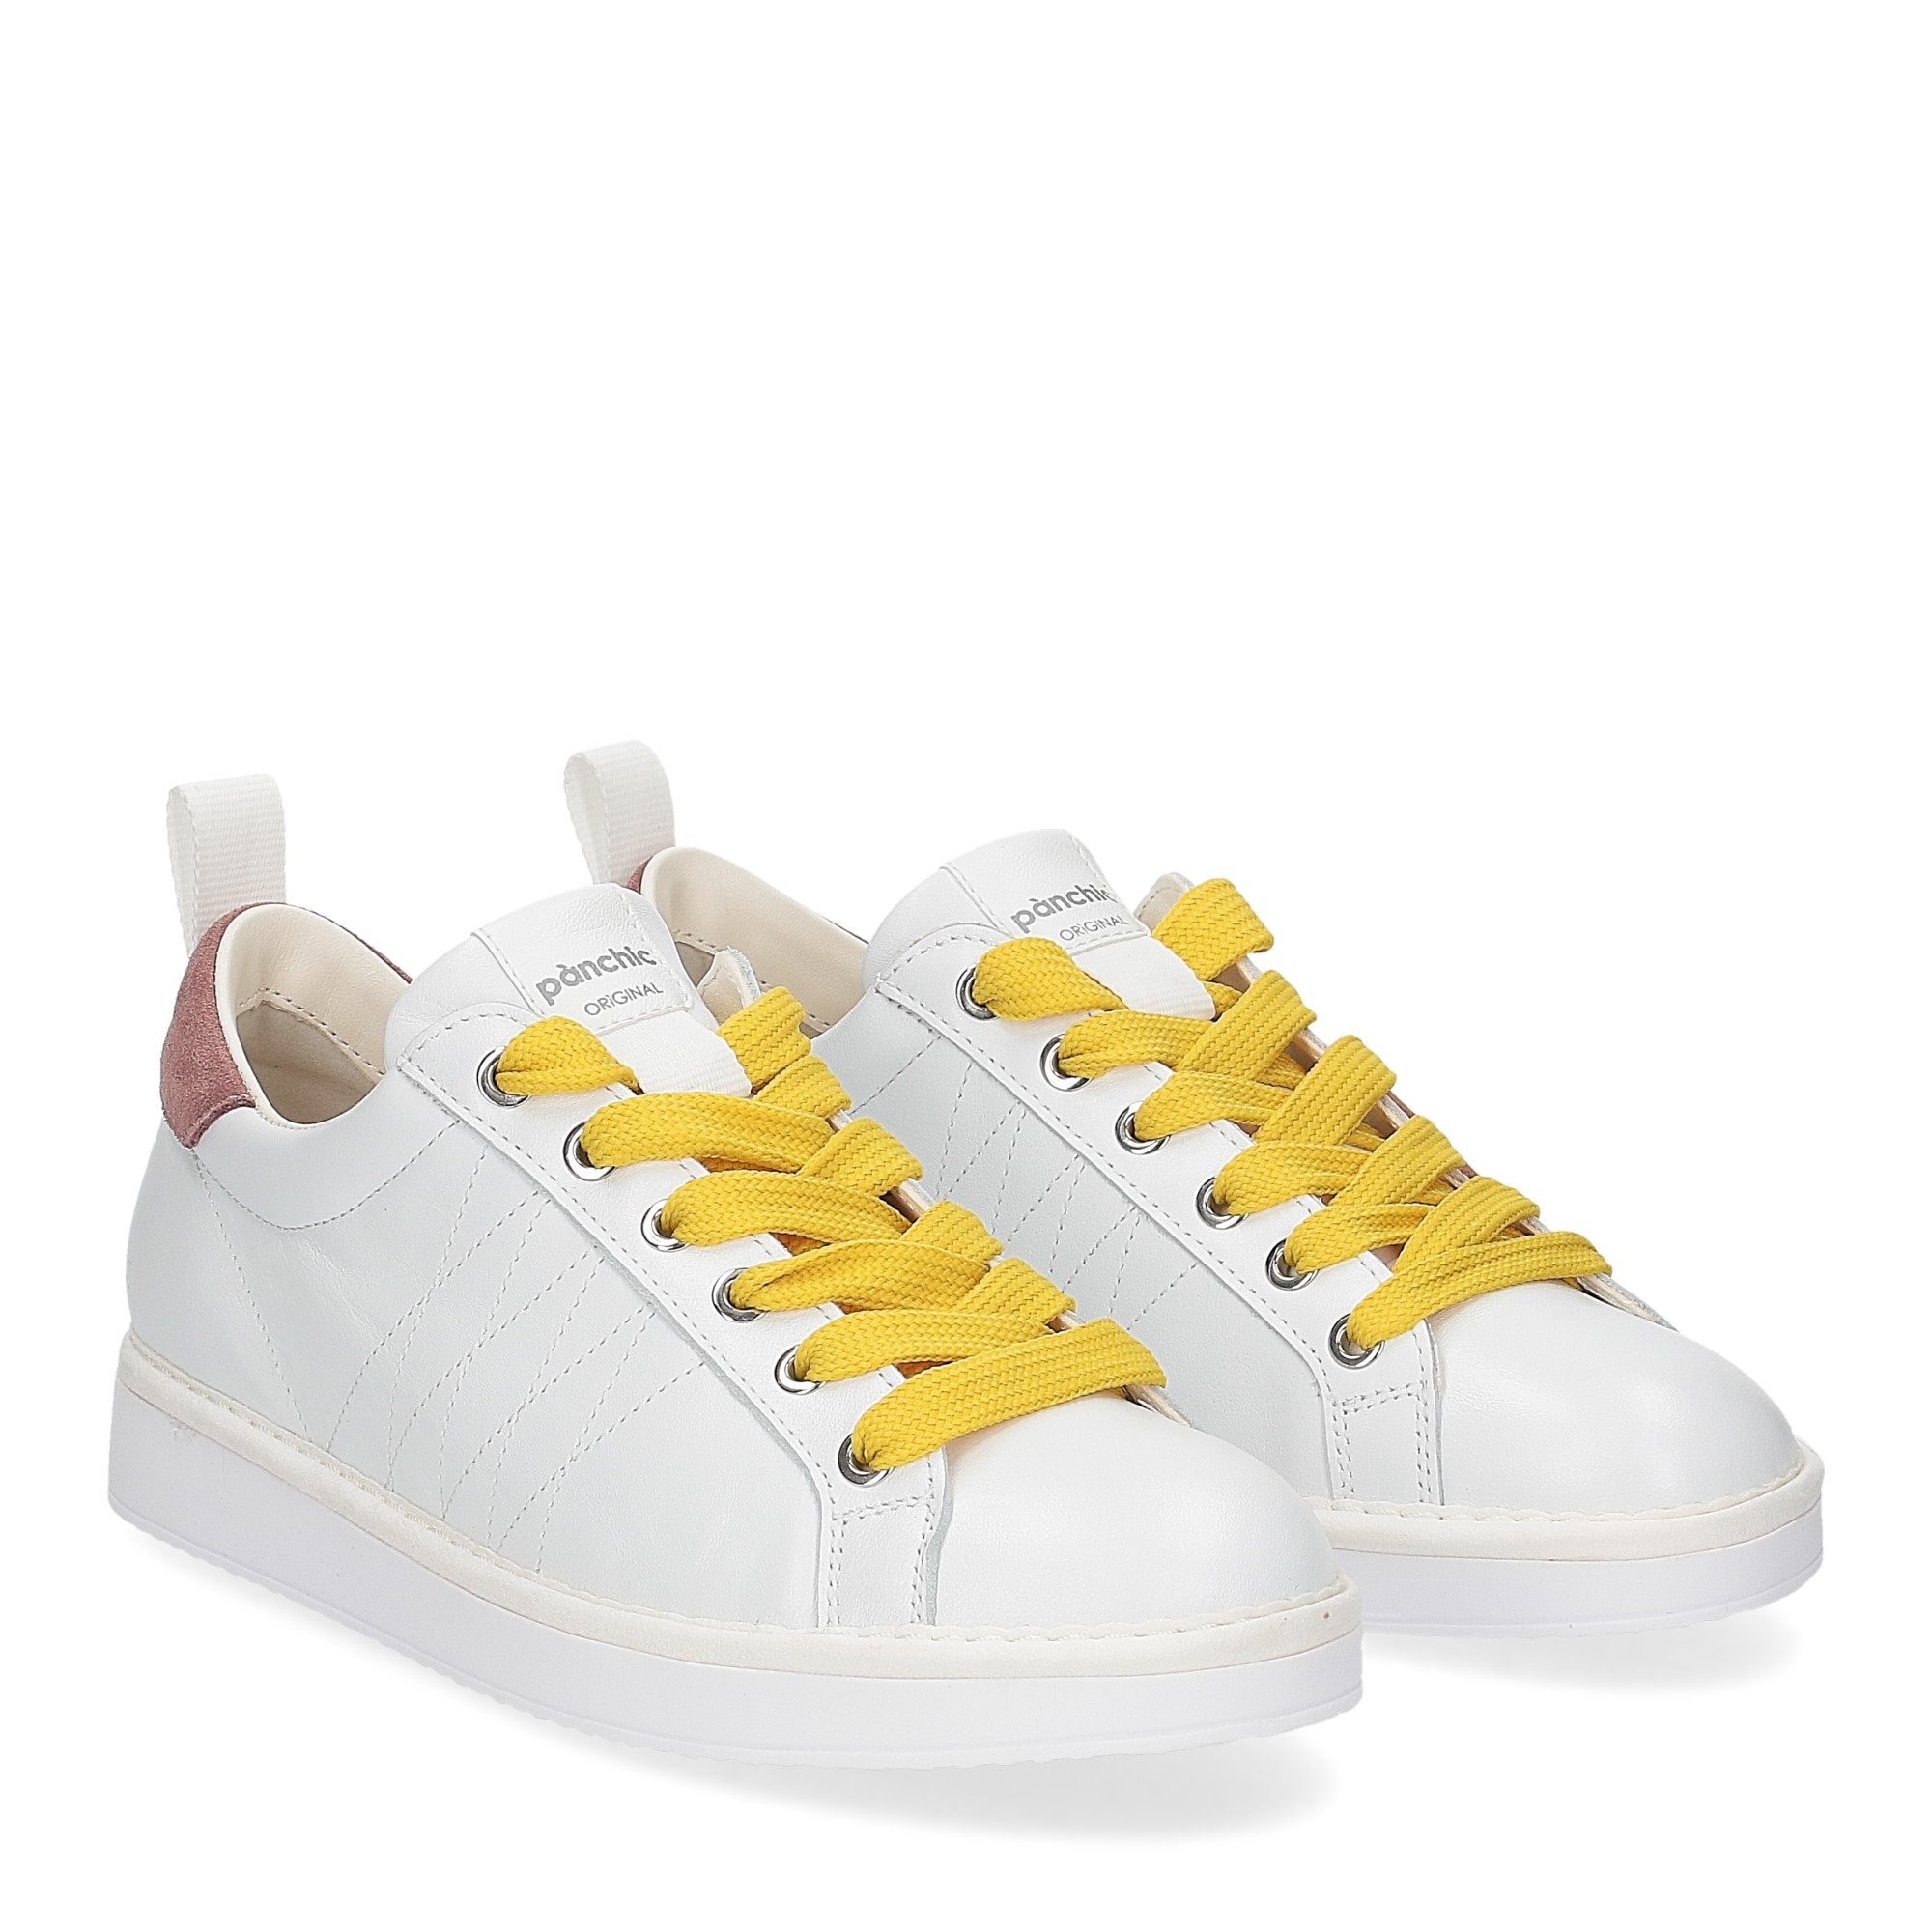 Panchic P01W leather white brownrose taxi